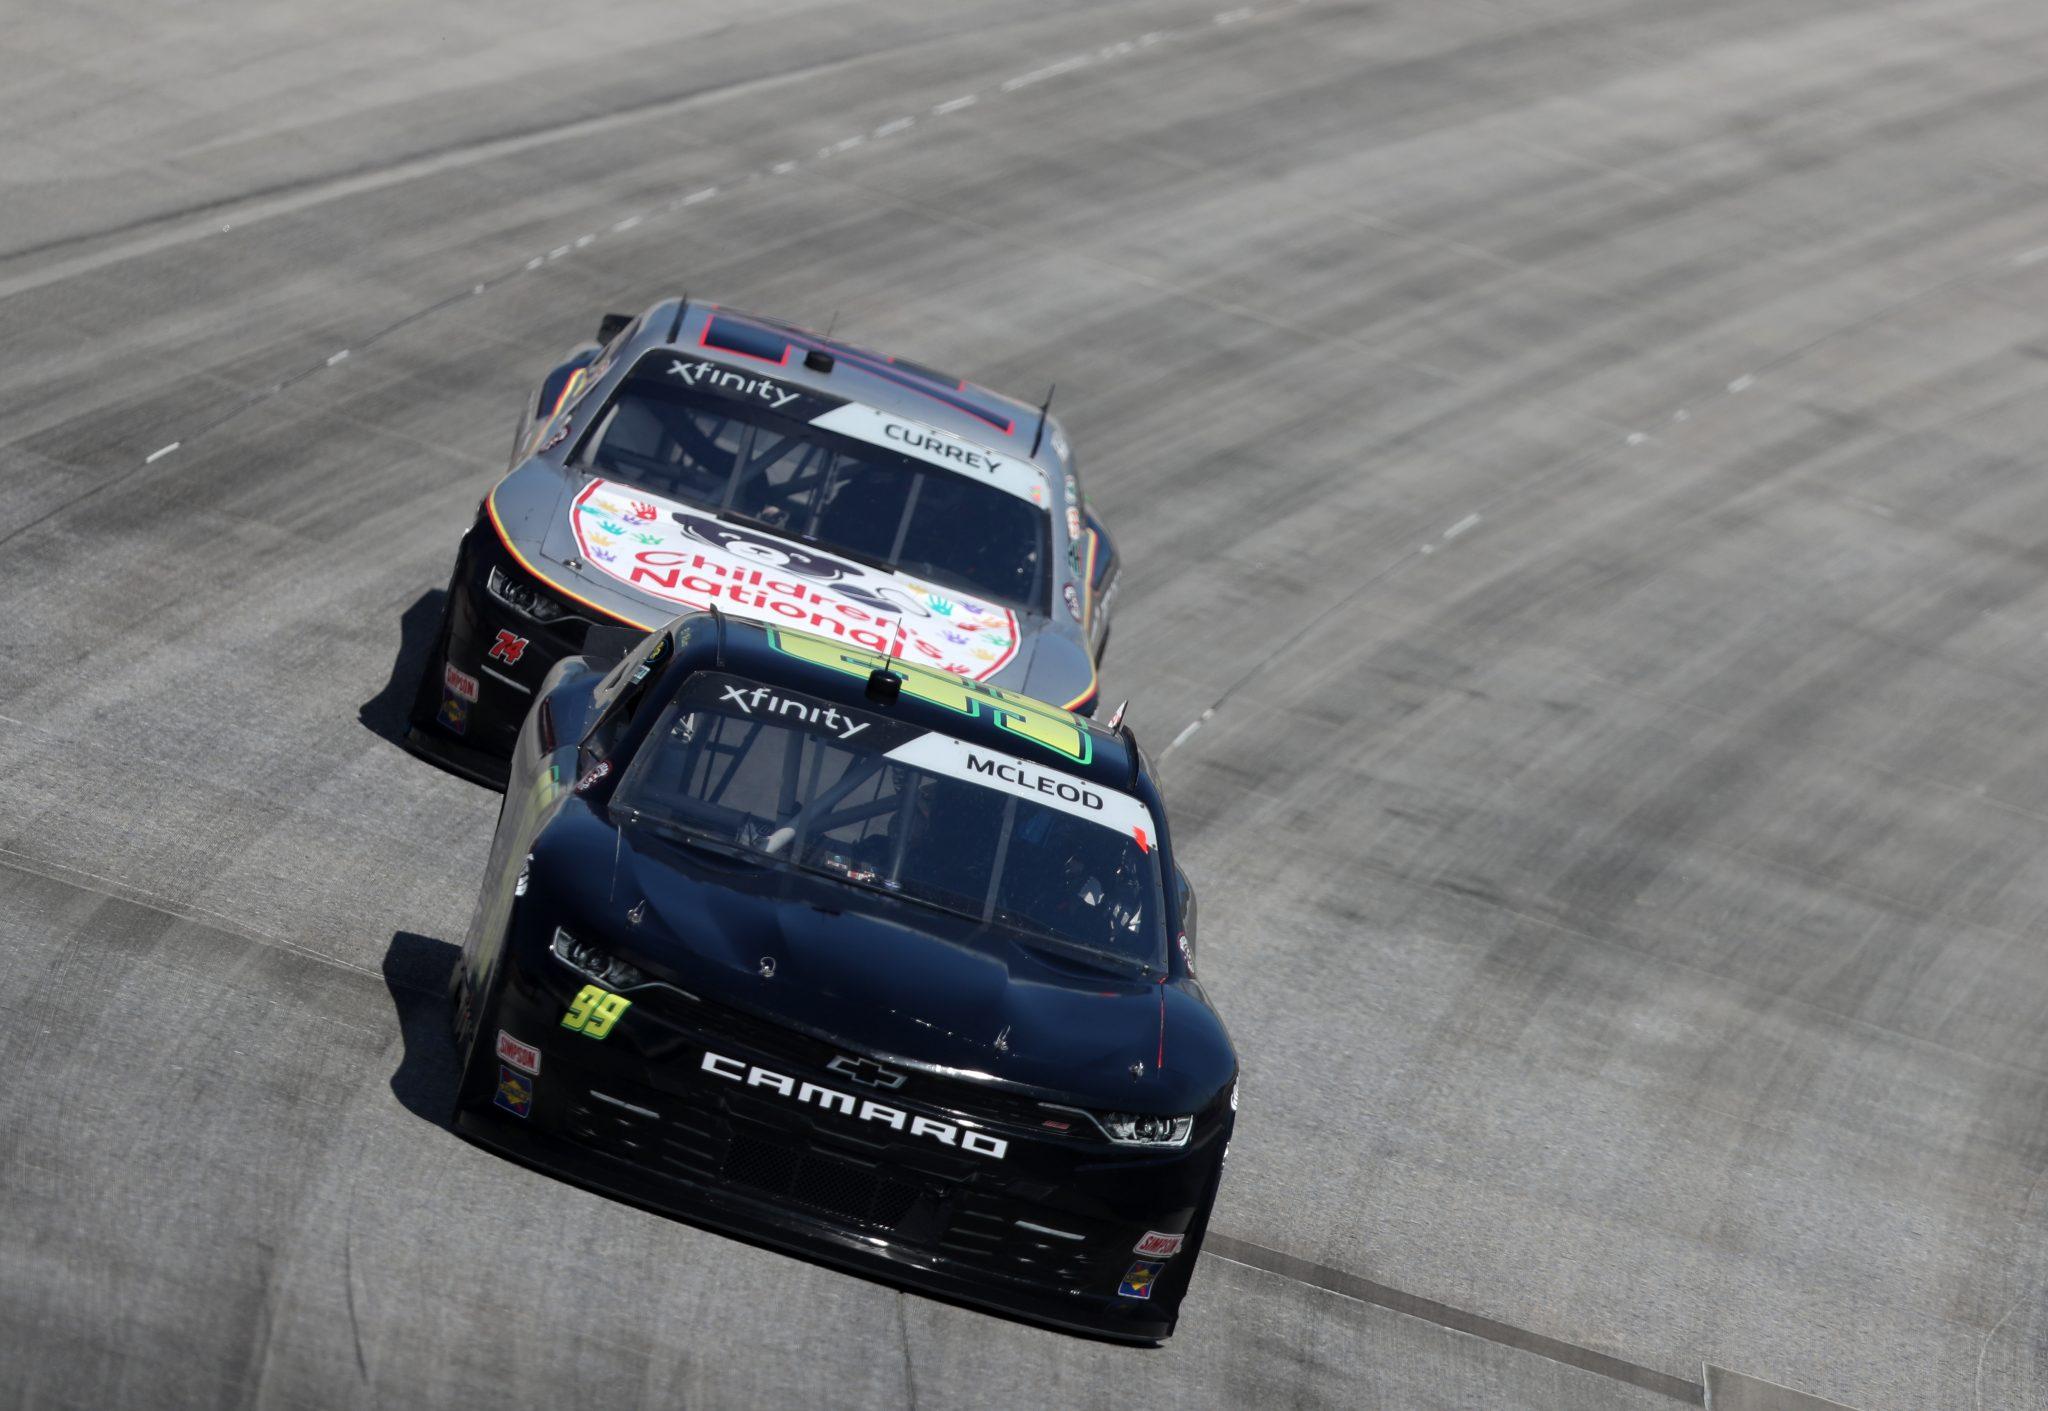 DOVER, DELAWARE - MAY 15: BJ McLeod, driver of the #99 Toyota, races during the NASCAR Xfinity Series Drydene 200 race at Dover International Speedway on May 15, 2021 in Dover, Delaware. (Photo by James Gilbert/Getty Images) | Getty Images